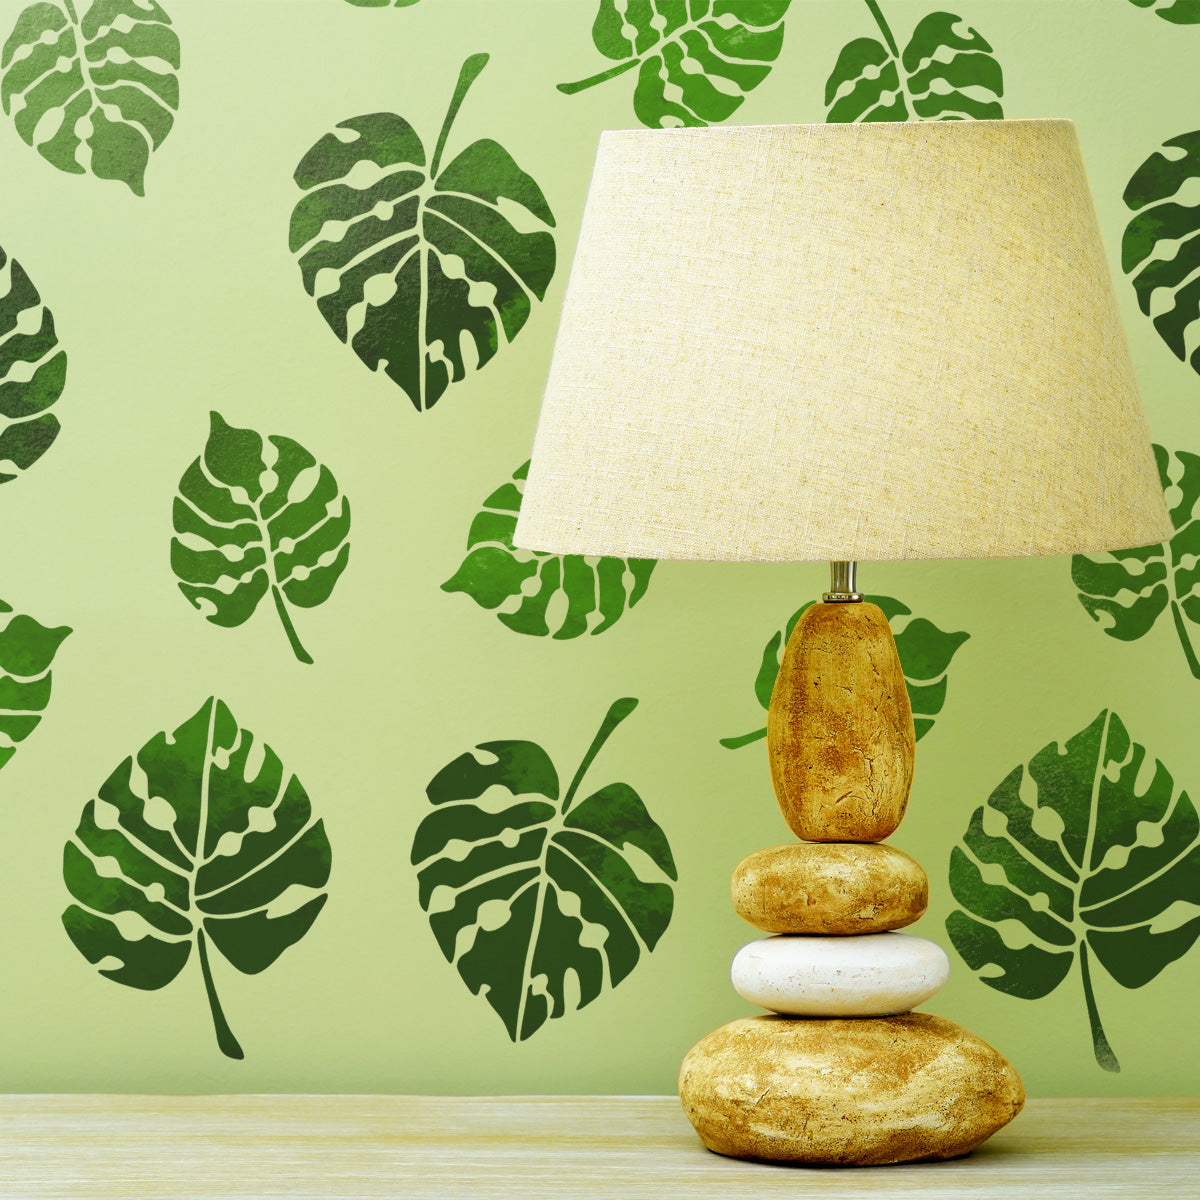 CraftStar Monstera Leaf Stencil Set on Wall